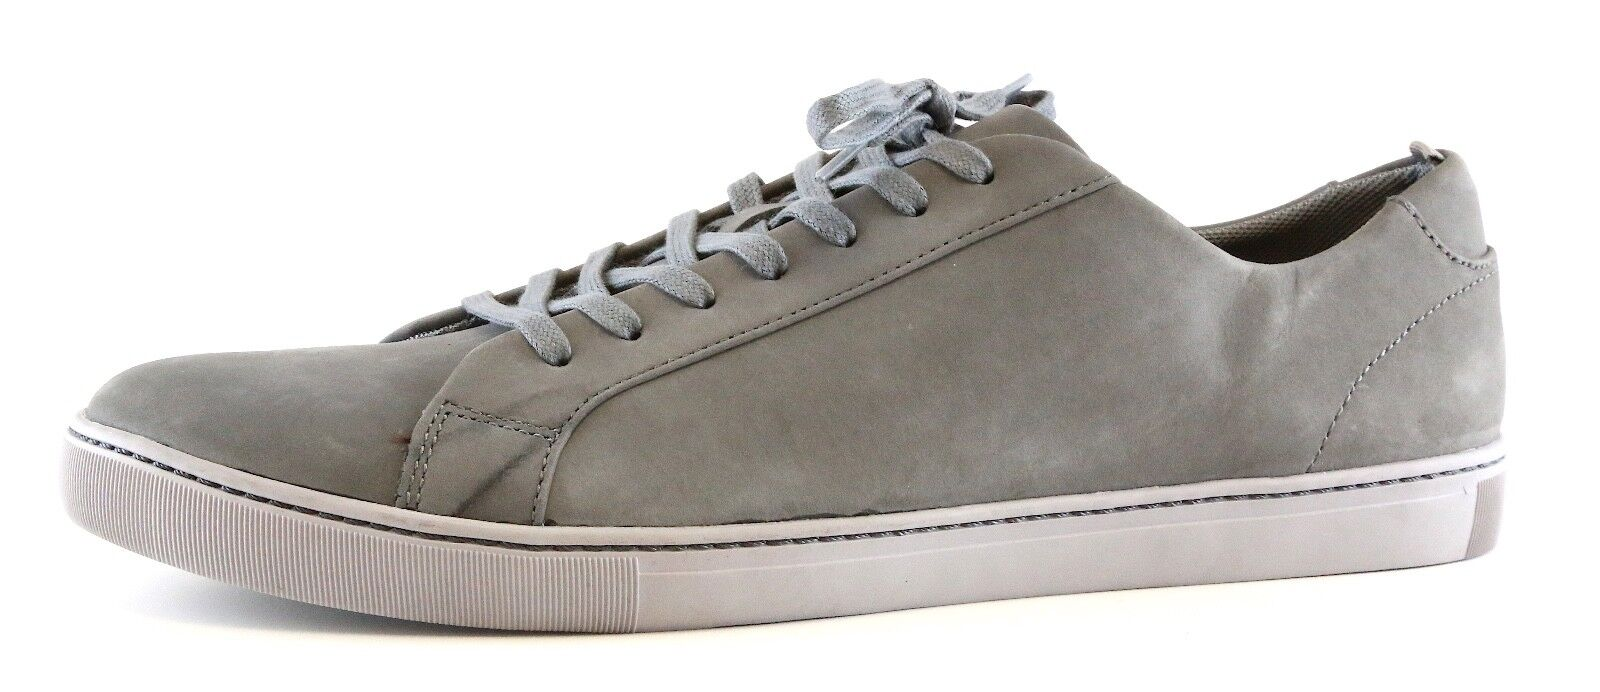 The Rail Lace Up Leather Sneakers Grey Men Sz 47 EUR 2955